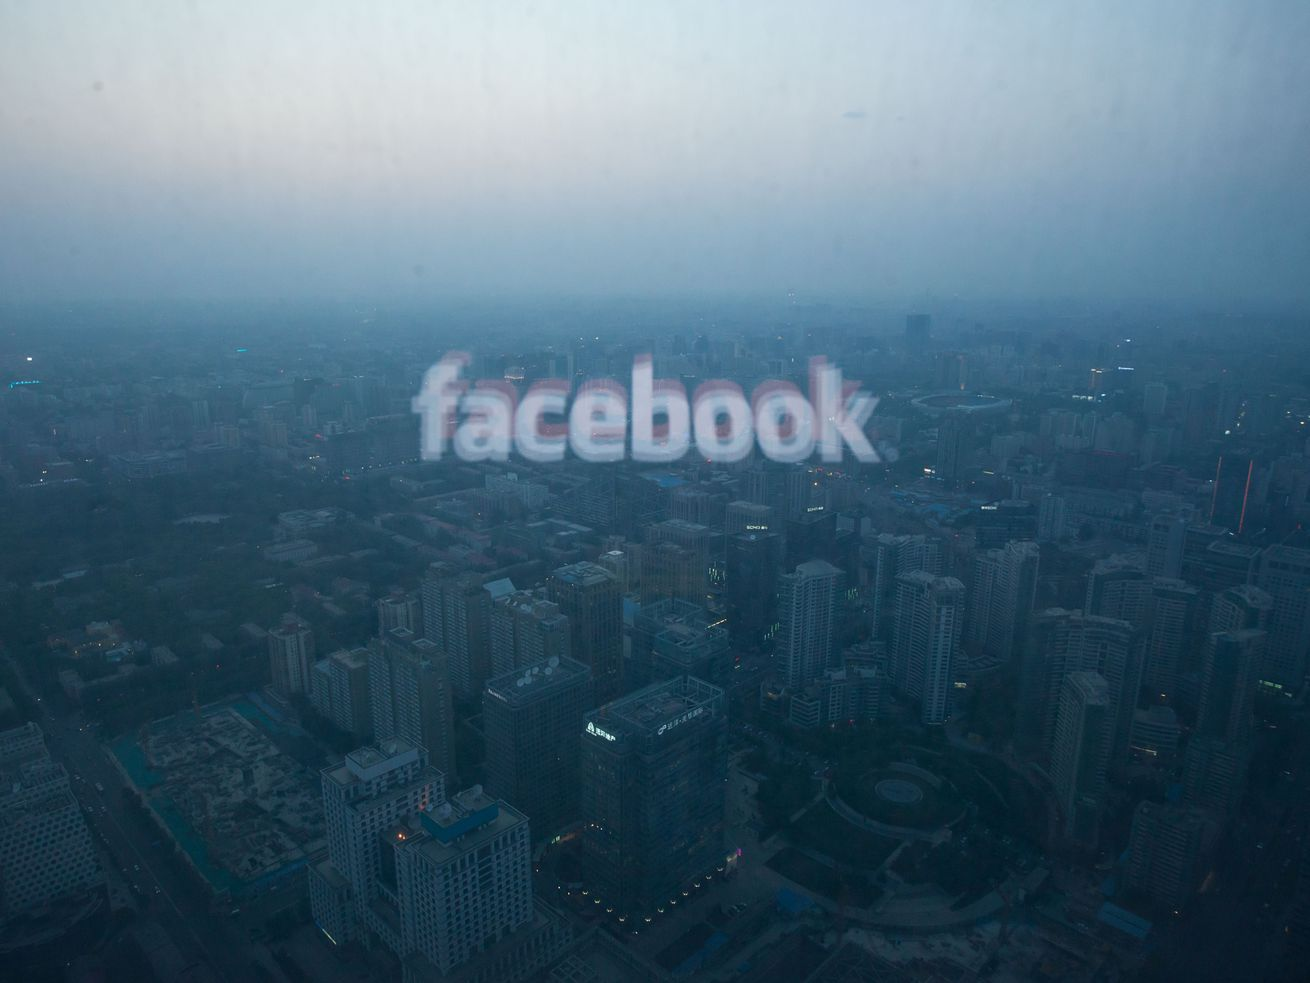 The Facebook logo reflected in a window looking out over a smoggy city.